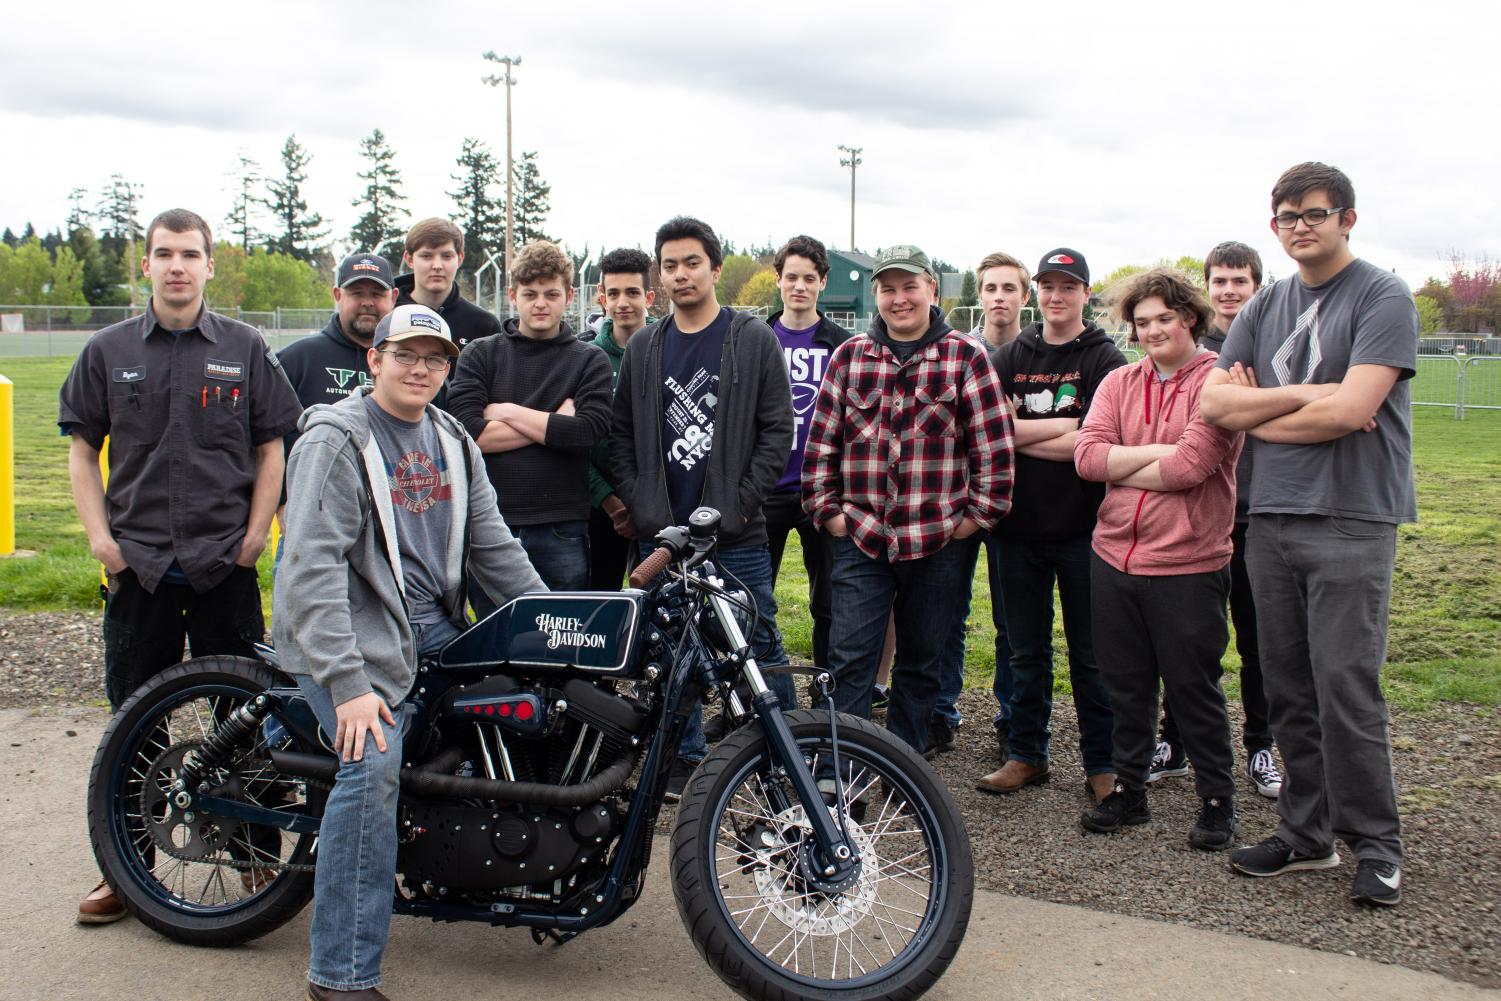 Junior Sterling McKinnon poses with Portland Flyer the bike he helped modify for a world-wide custom motorcycle competition. The Auto Electrical class gathered around to see the results.